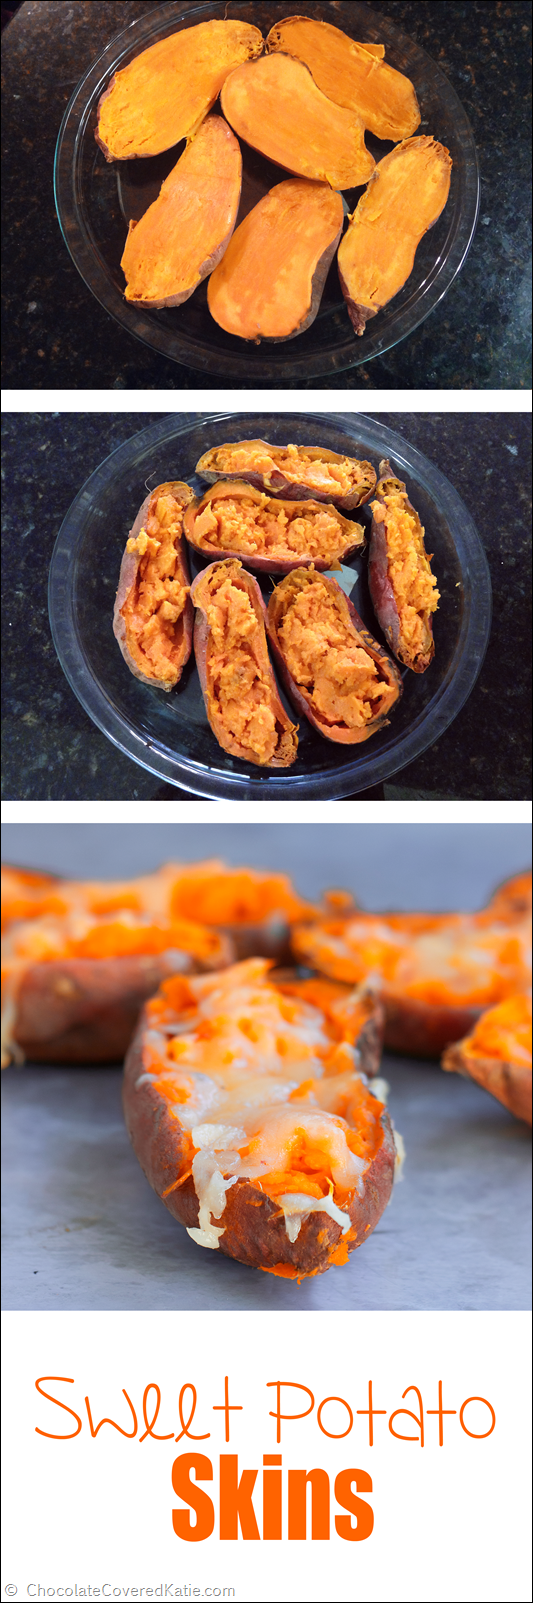 Irresistibly cheesy, addictively crispy, and secretly healthy, they are the perfect comfort food party appetizer. Really easy and quick to make: http://chocolatecoveredkatie.com/2015/01/22/loaded-baked-sweet-potato-skins/